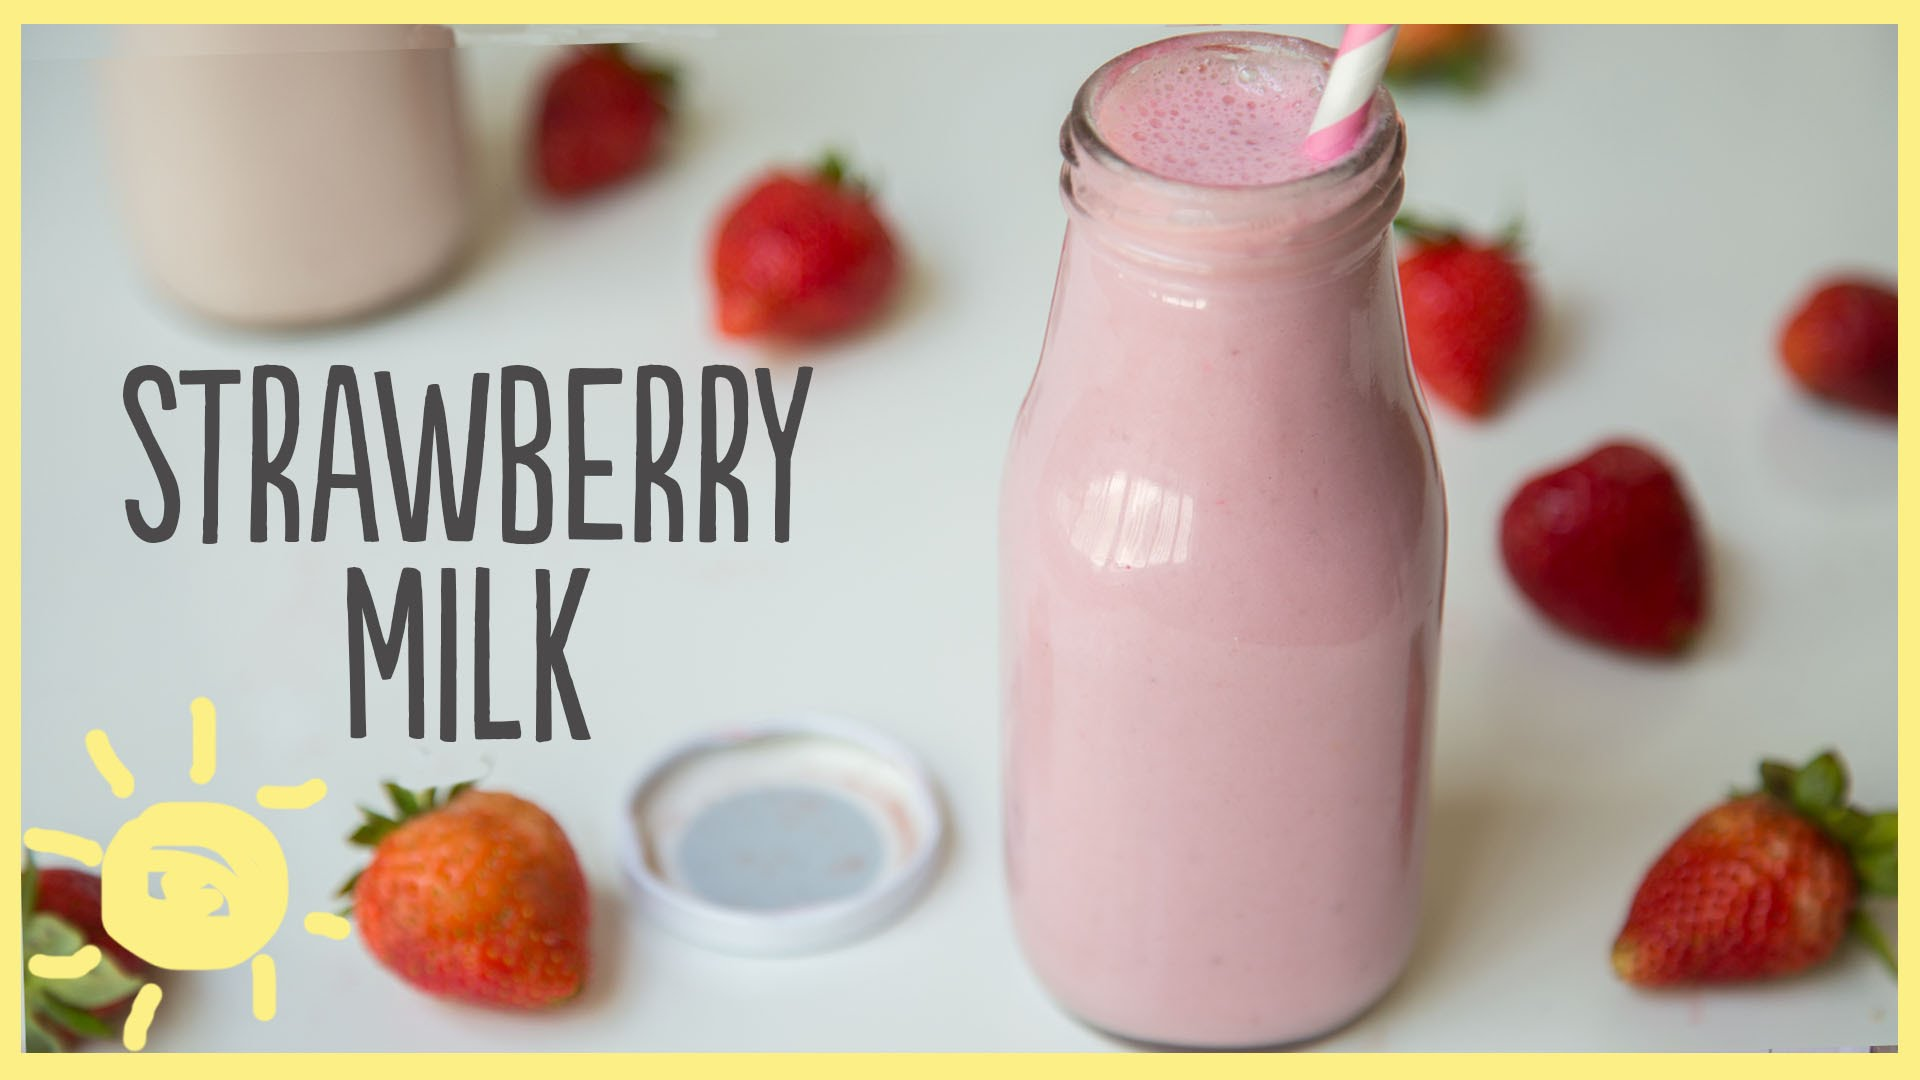 EAT | Strawberry Milk, Homemade (Only 4 Ingredients!) - YouTube